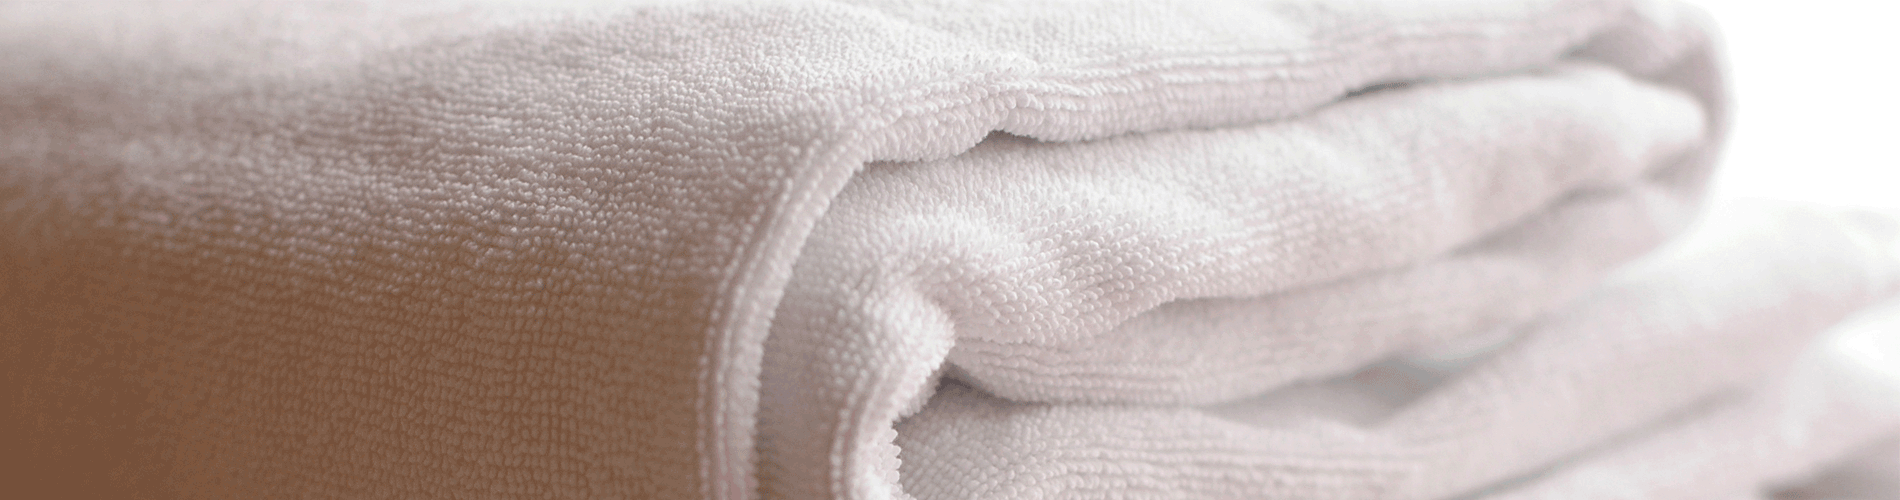 white towels background image